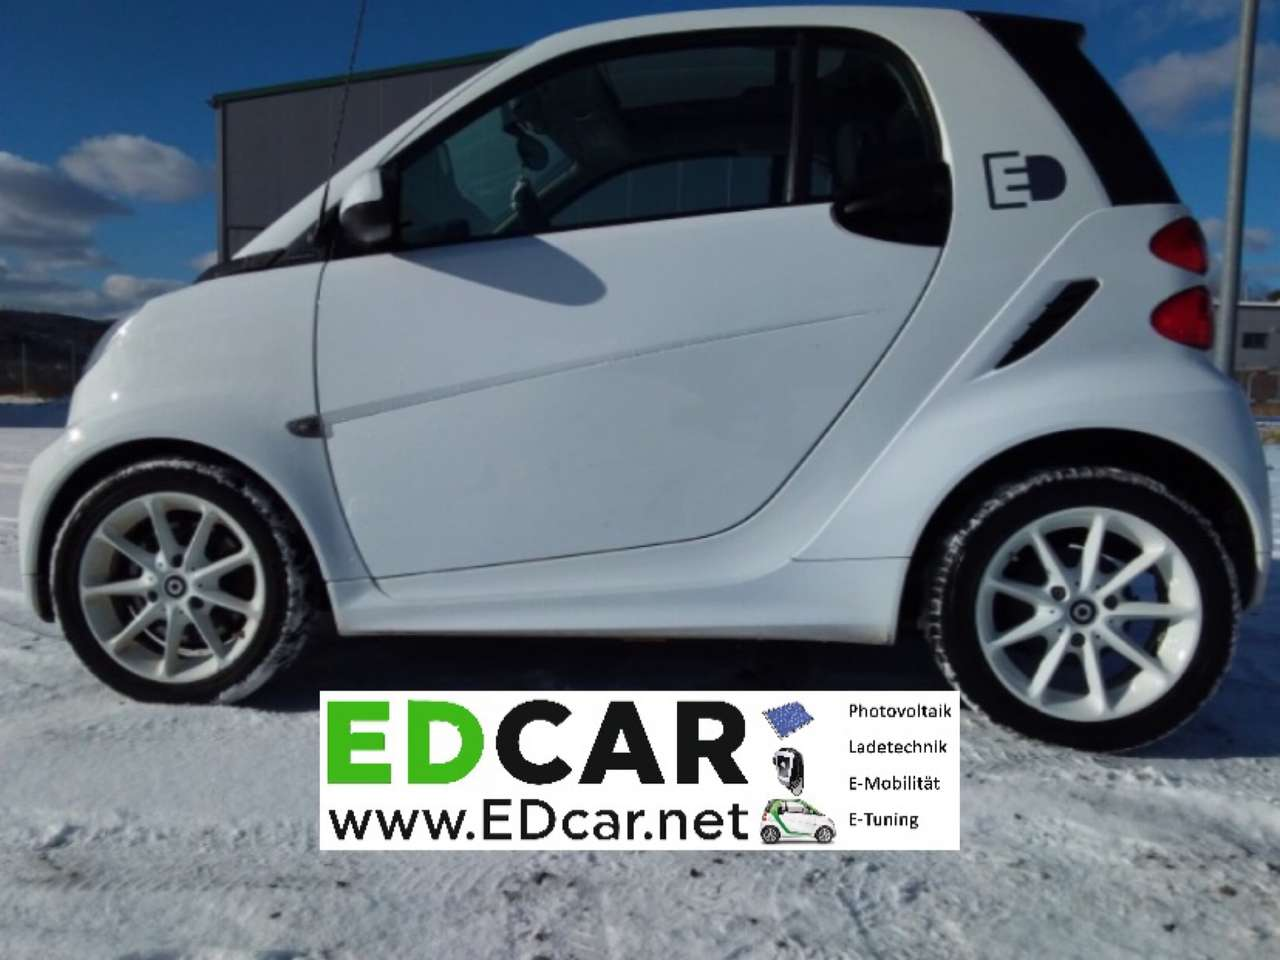 Autos nach Smart Fortwo fortwo Brabus